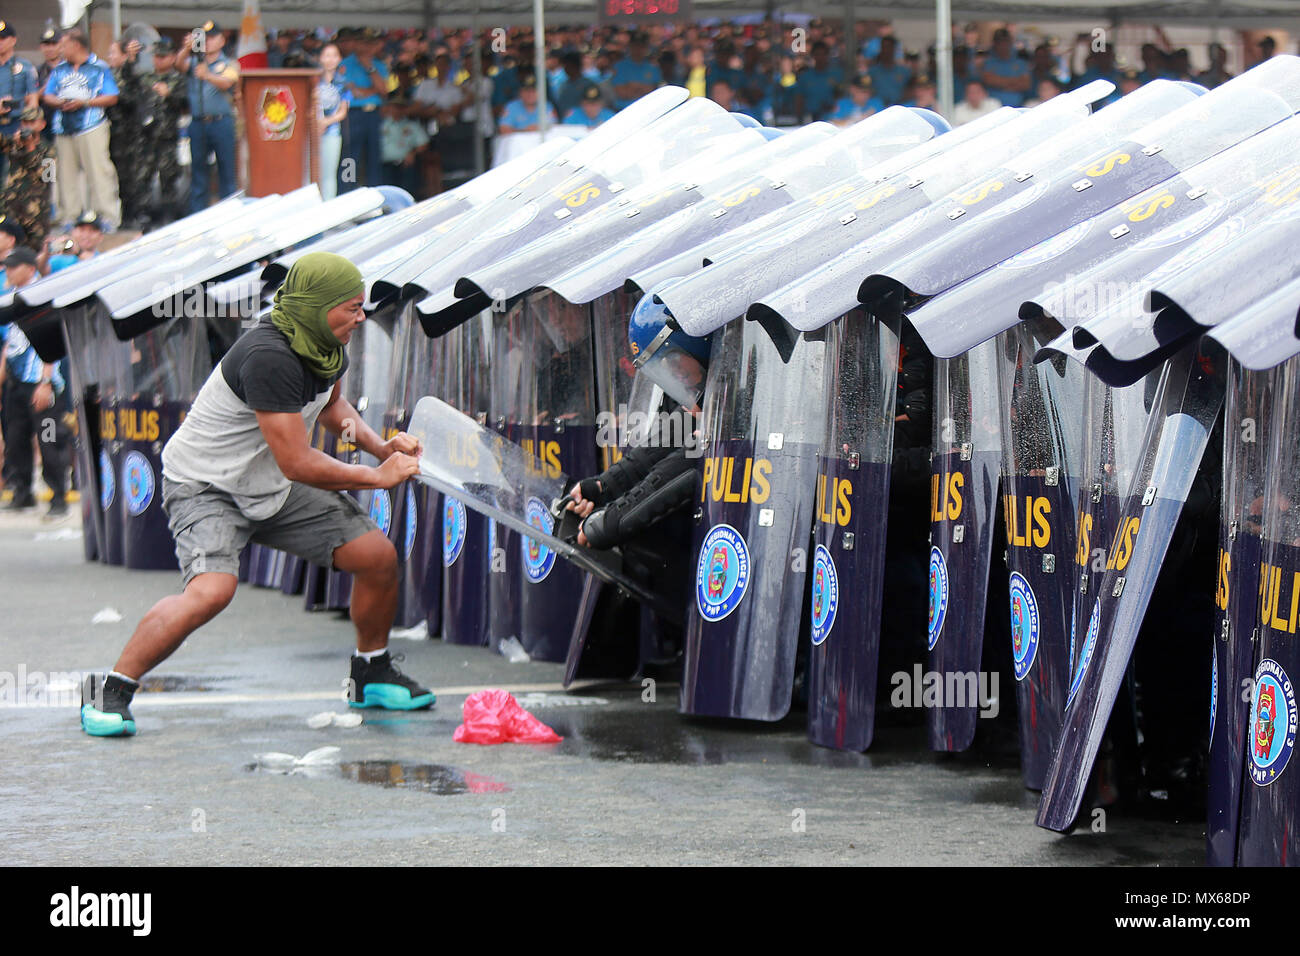 Manila, Philippines. 3rd June, 2018. An assumed activist tries to break the formation of policemen during the annual Philippine National Police Civil Disturbance Management (PNP-CDM) competition in Manila, the Philippines, June 3, 2018. Credit: Rouelle Umali/Xinhua/Alamy Live News - Stock Image